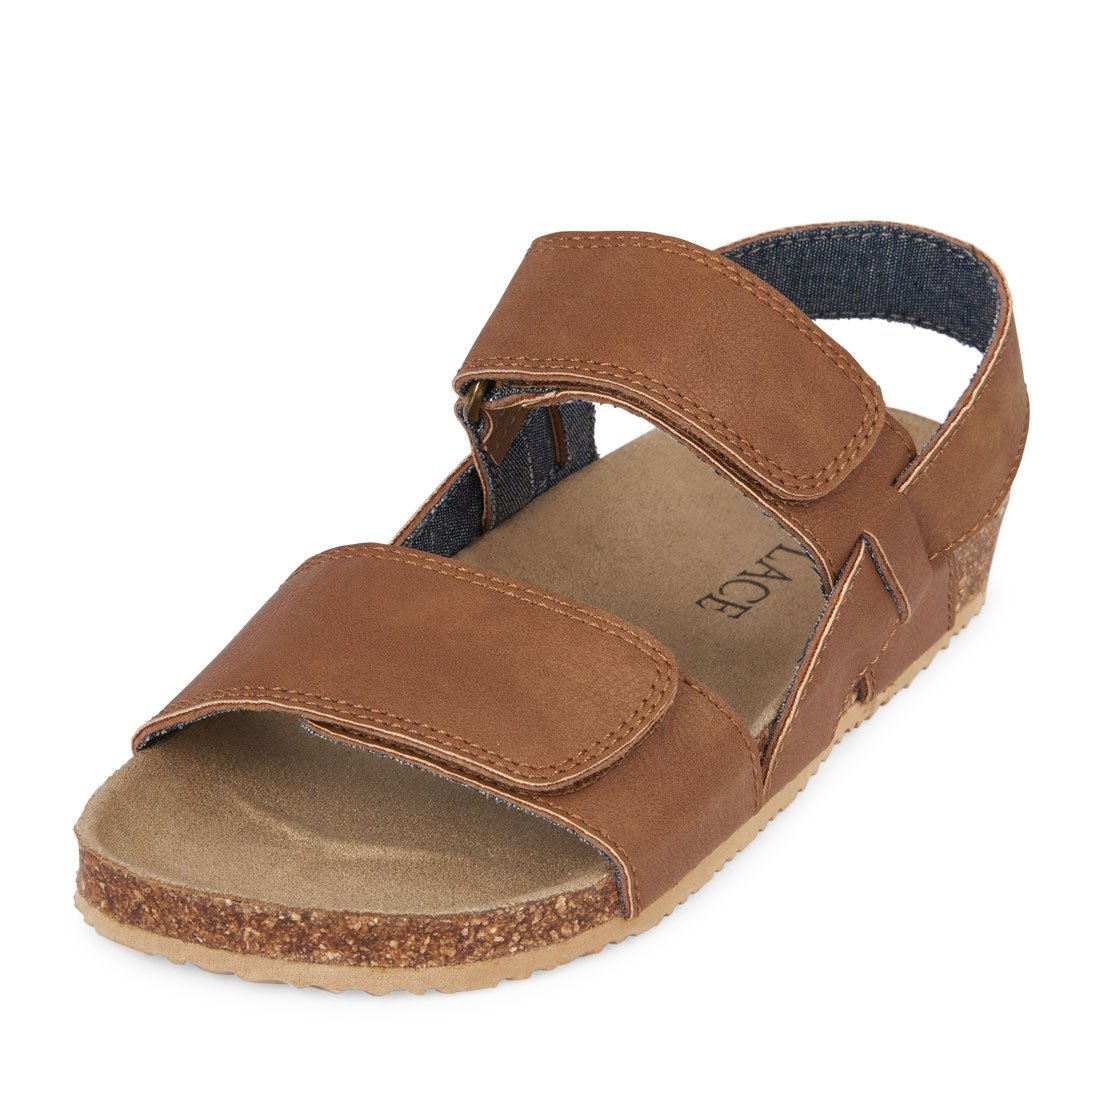 The Children's Place Boys' Double-Strap Scout Sandal, Tan, Youth 4 Youth US Big Kid